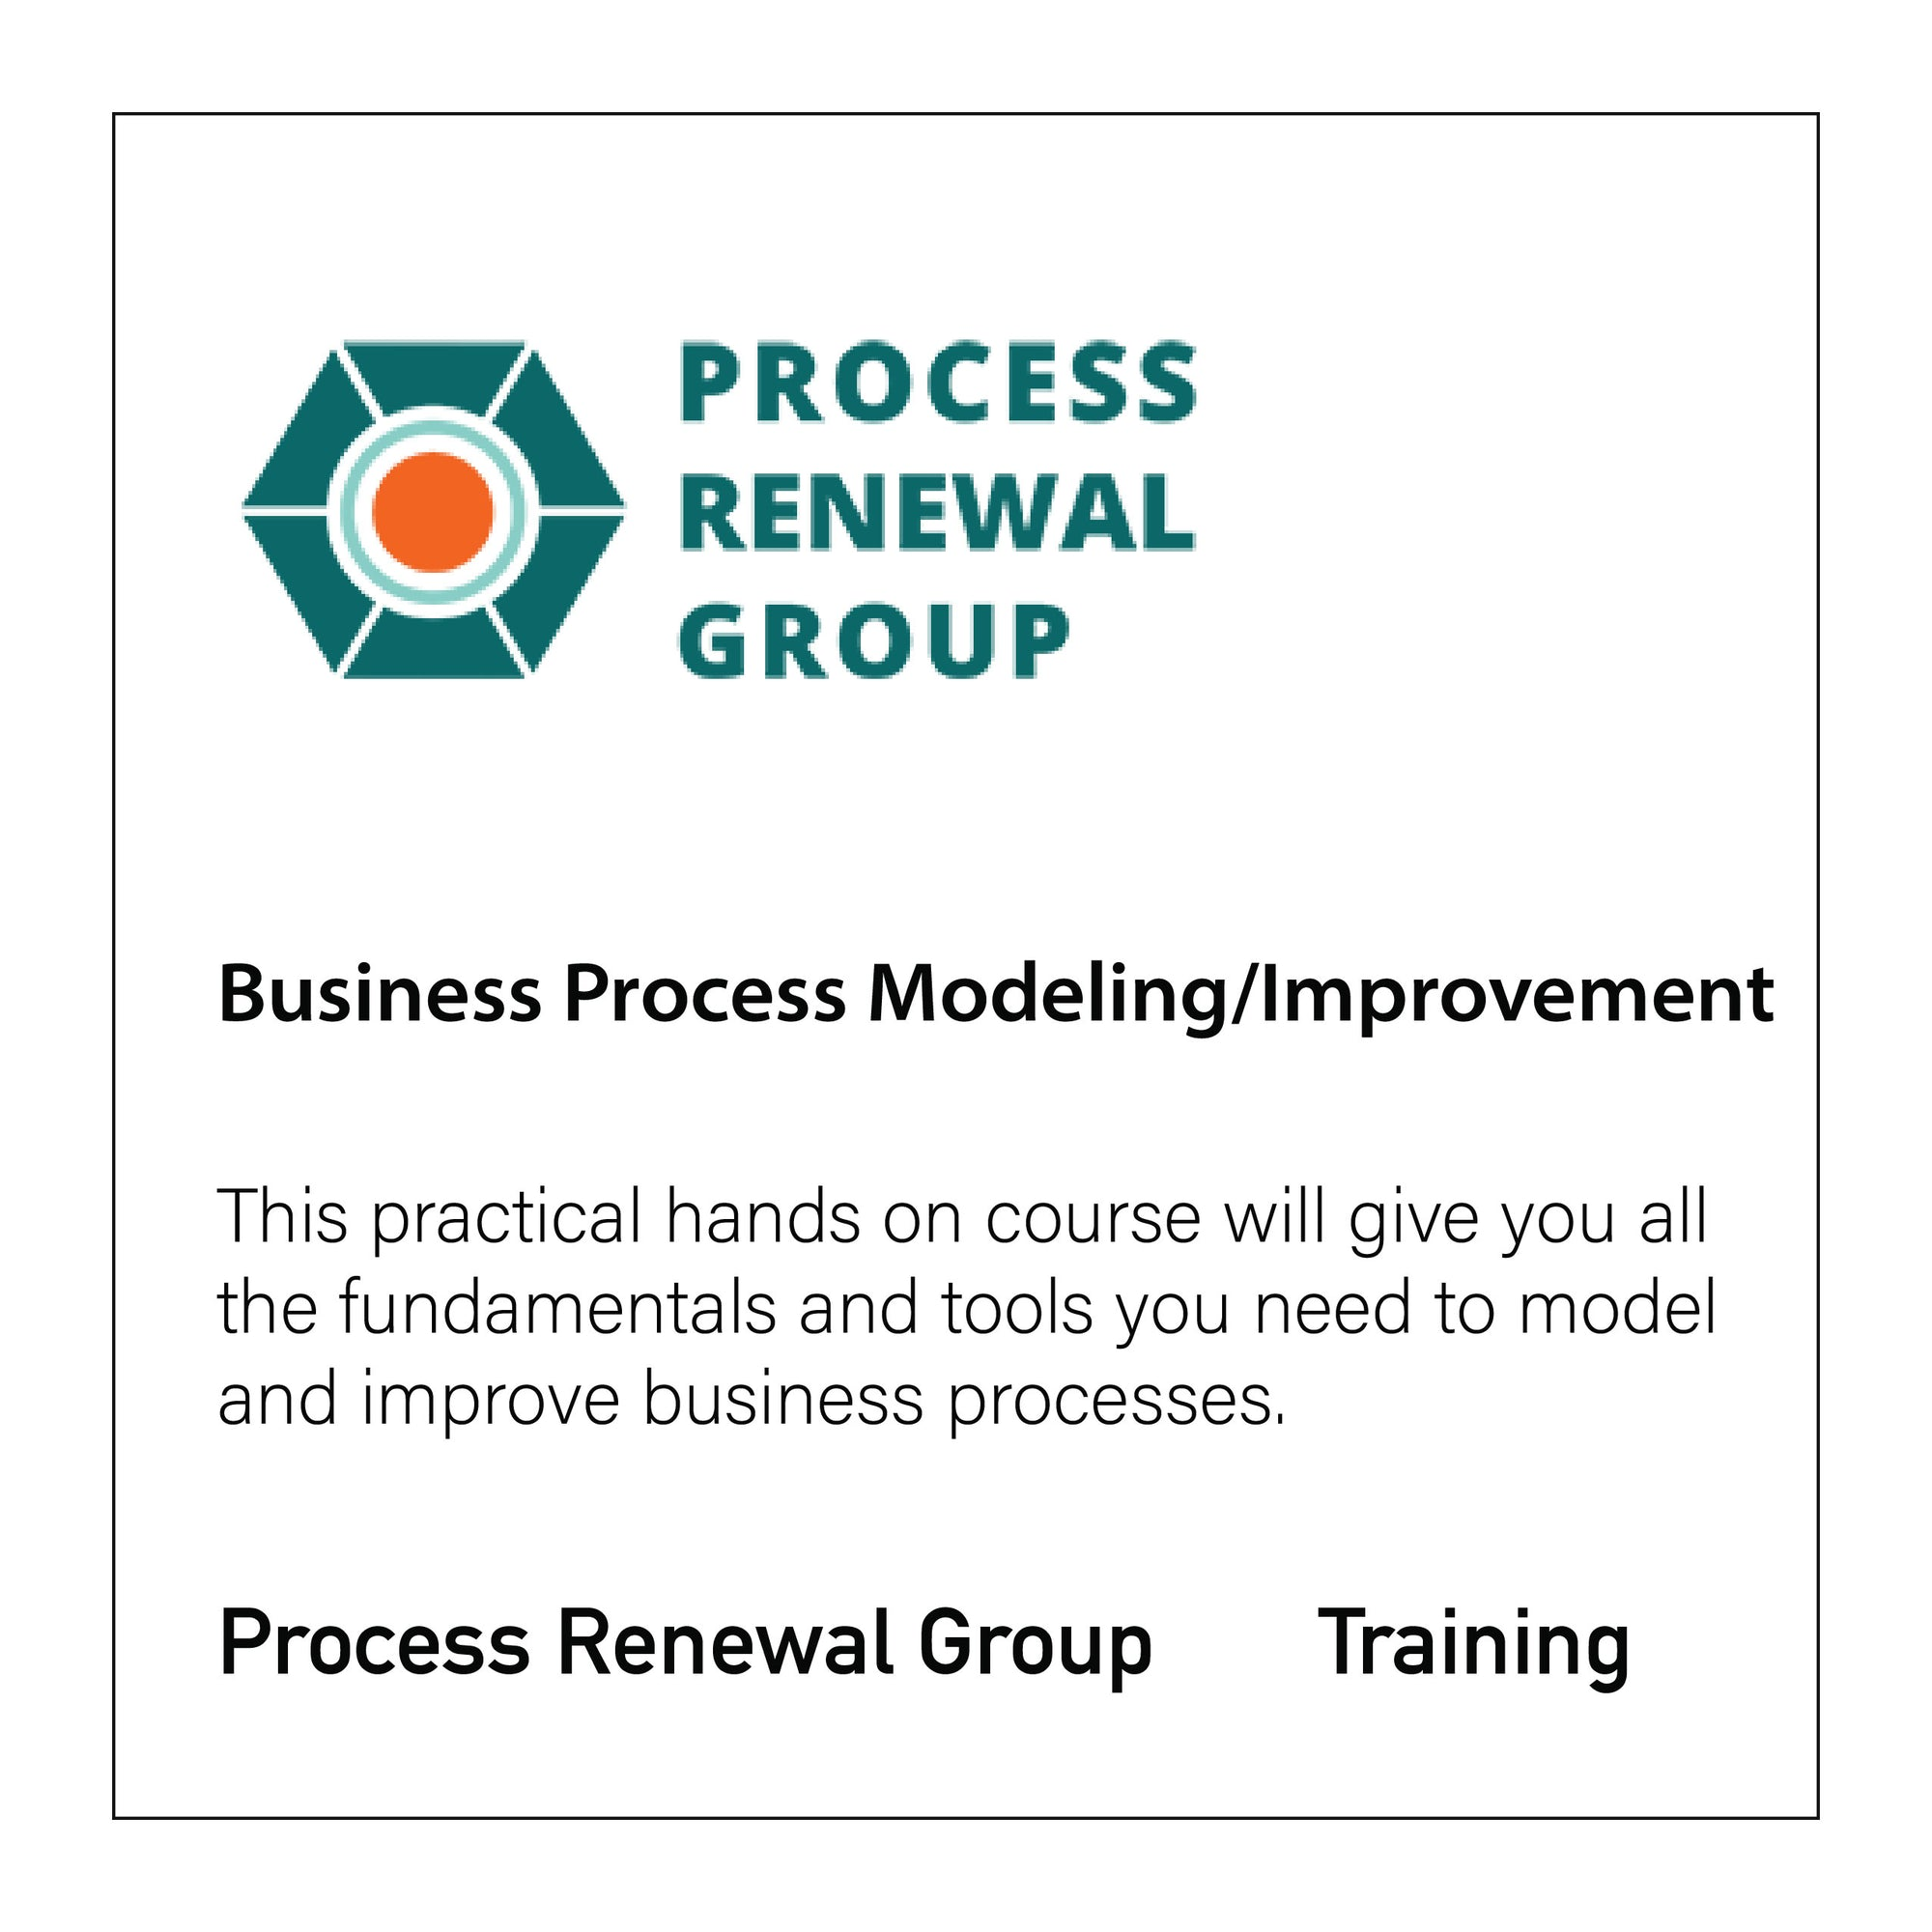 Business Process Modeling and Improvement - CloseReach Ltd